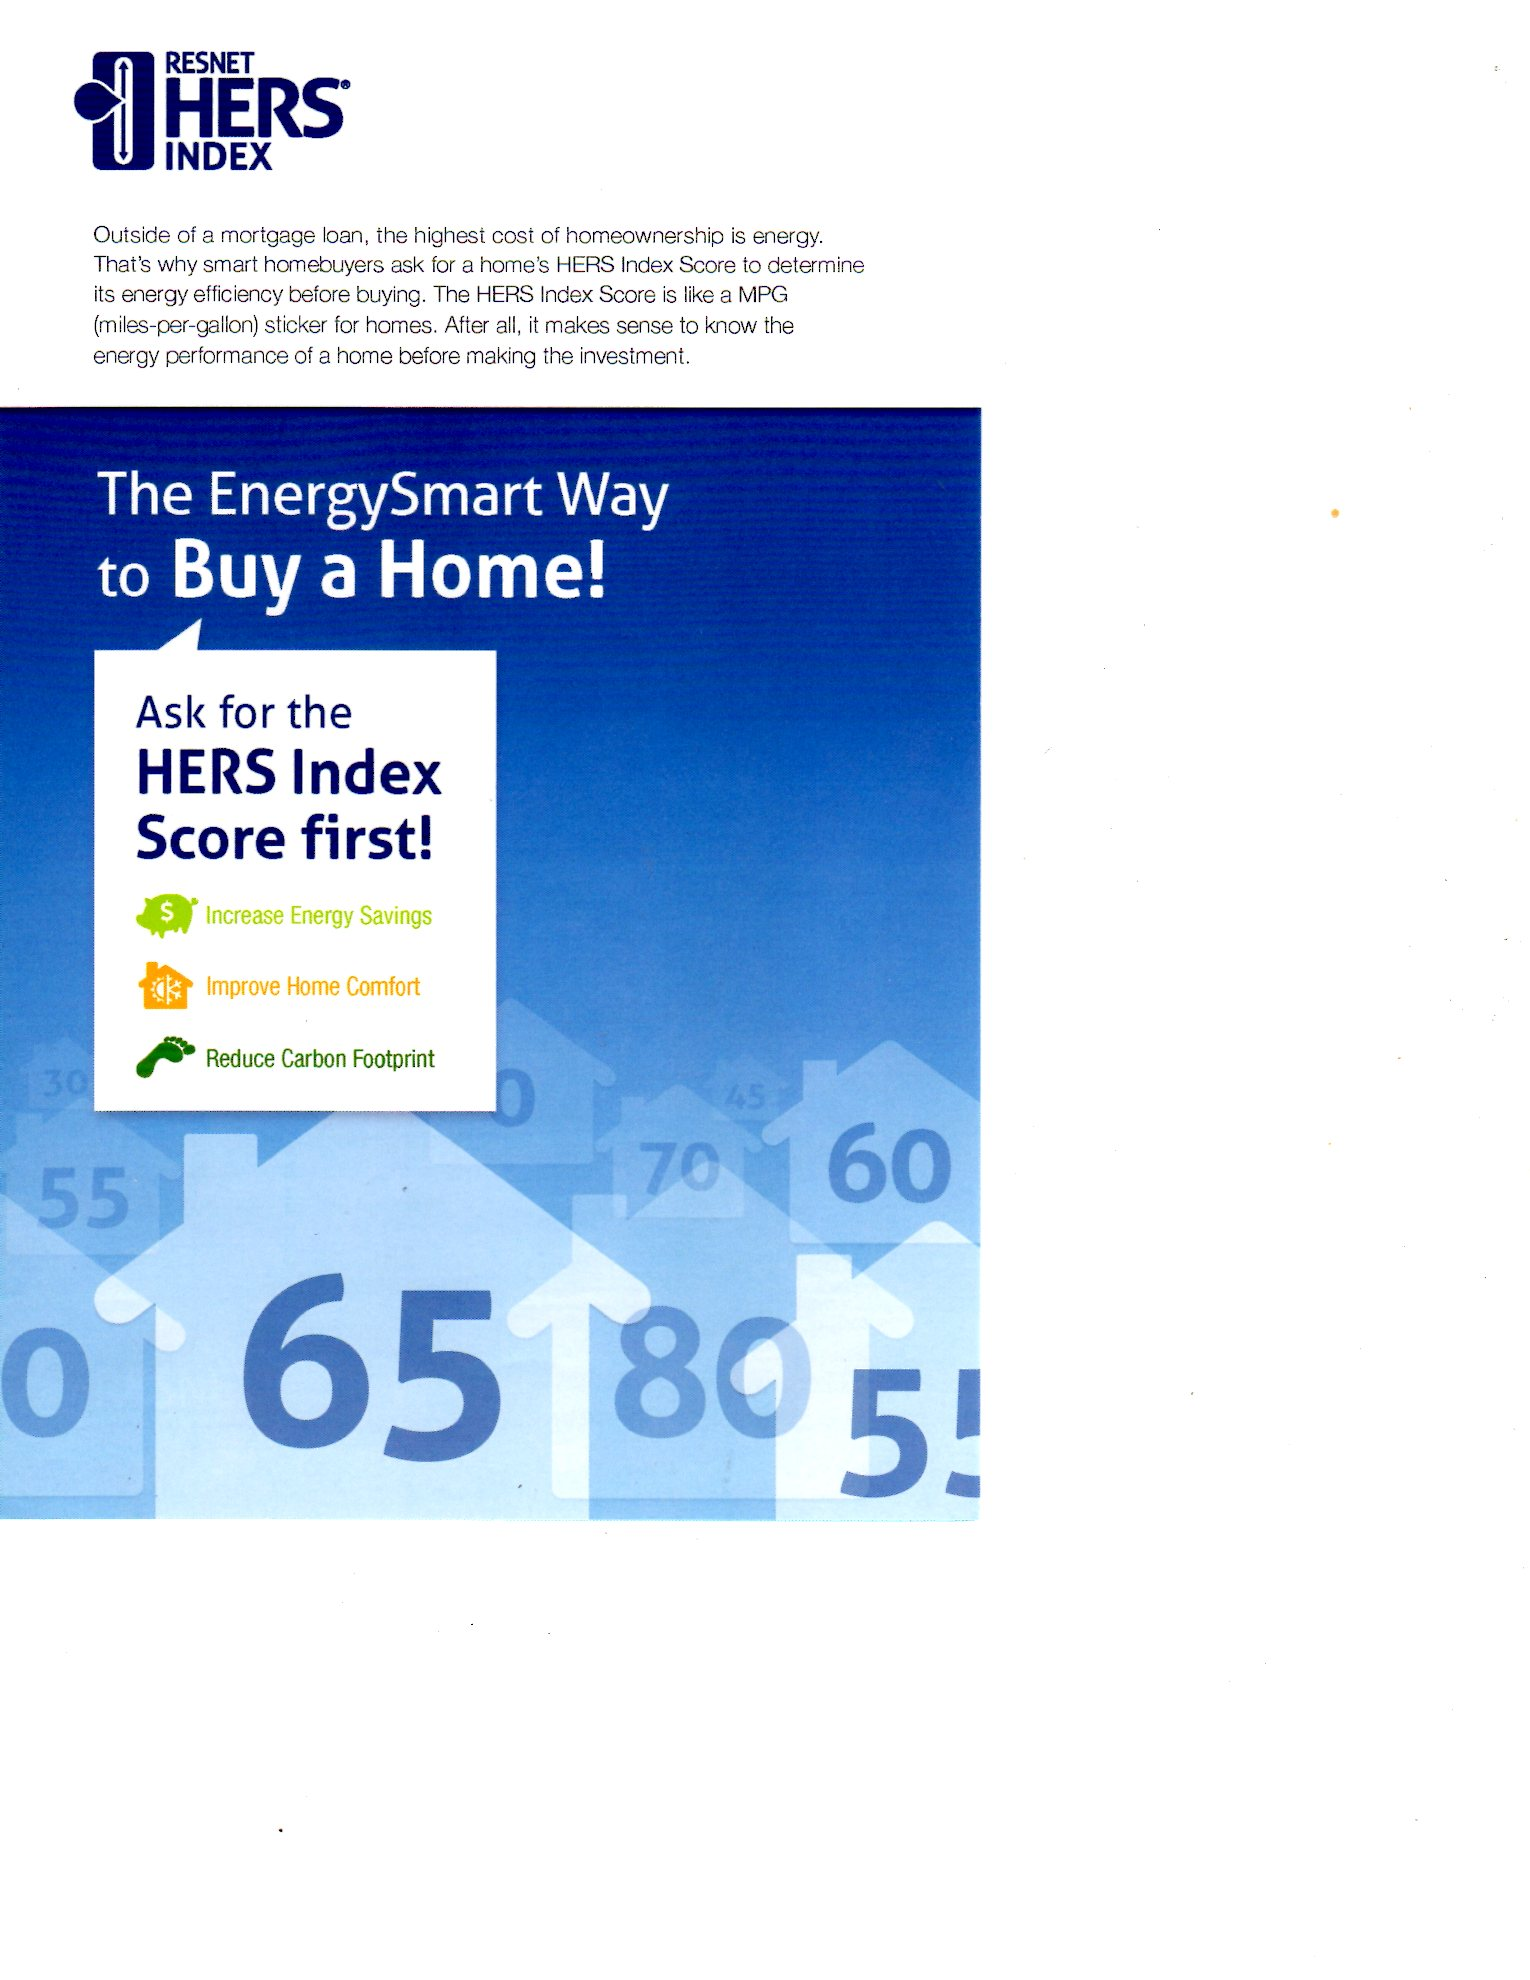 HERS Rating information